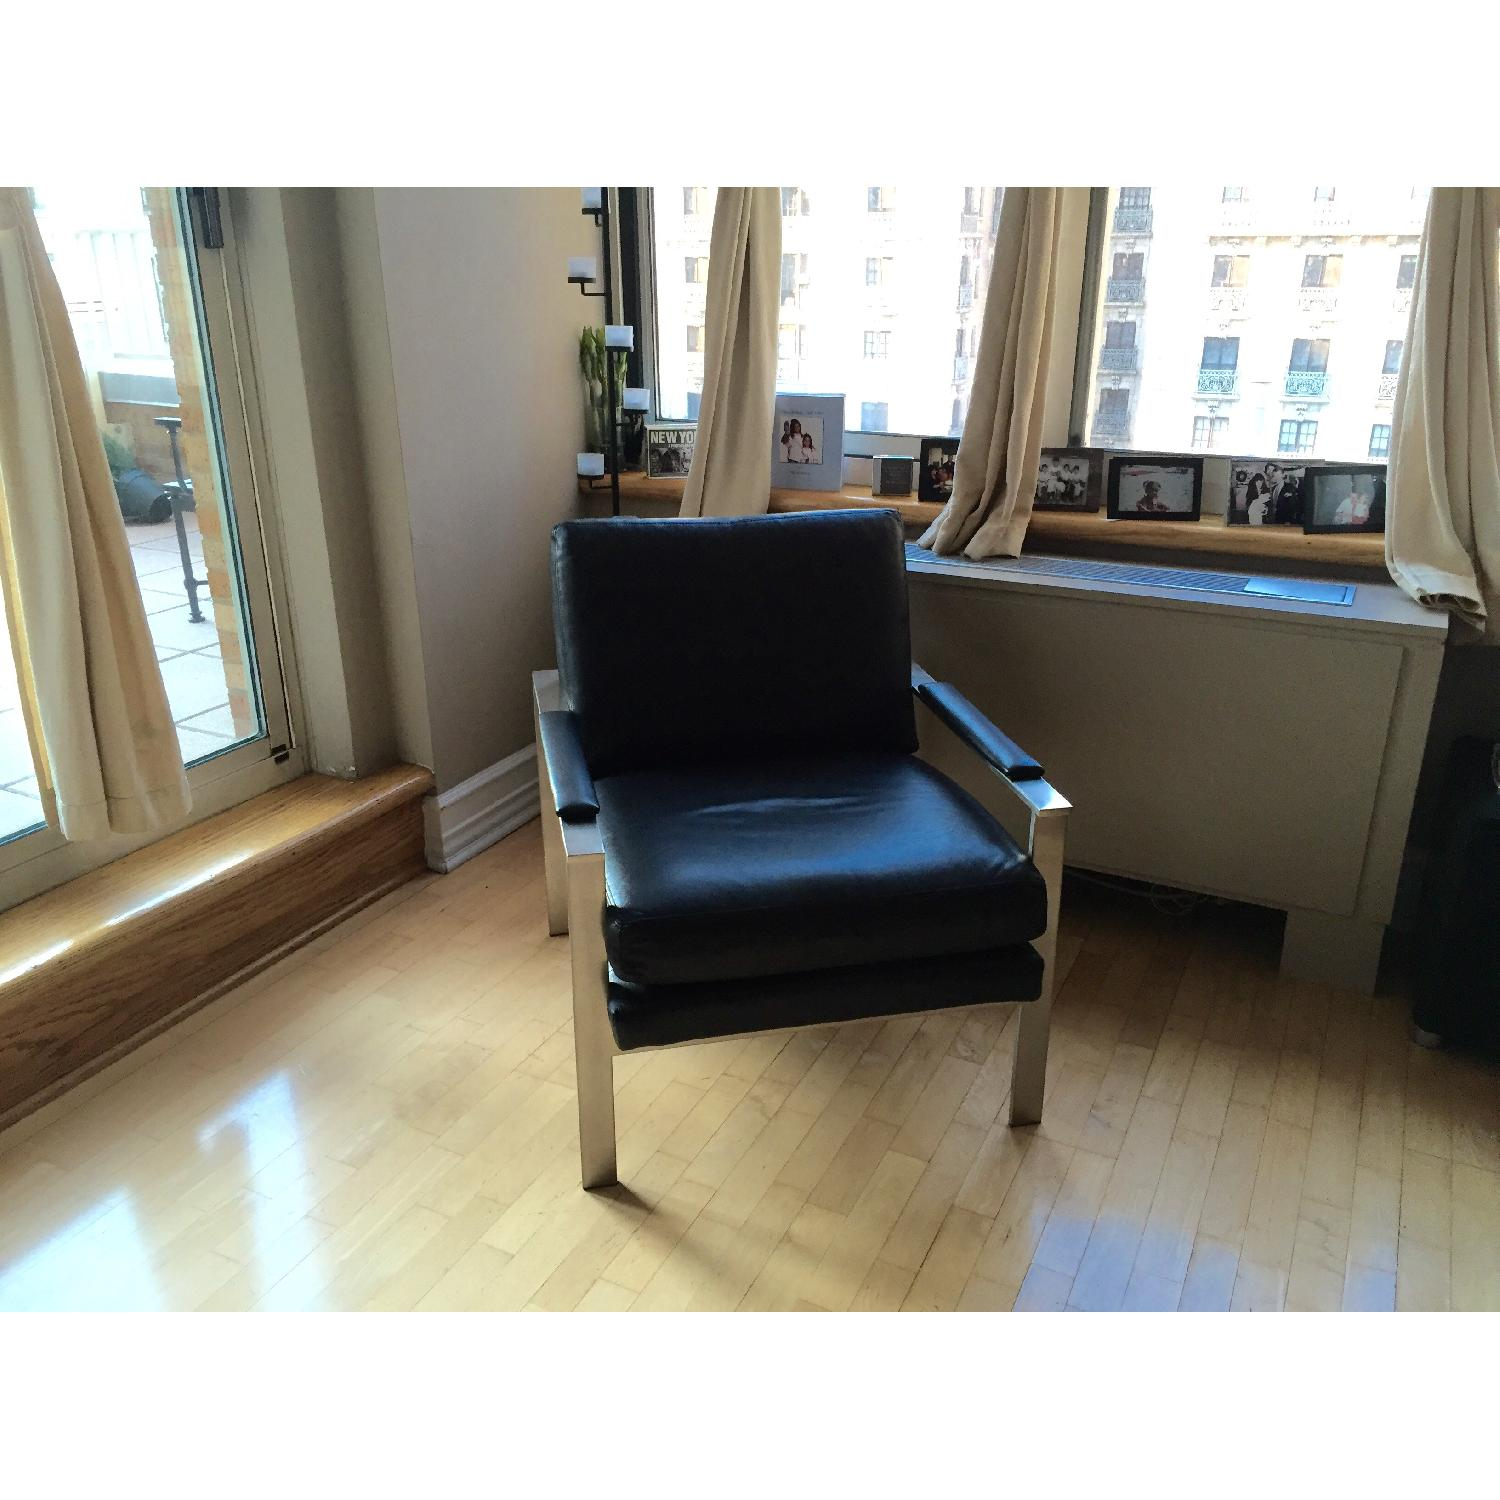 Ethan Allen Jericho Leather Chair - image-1